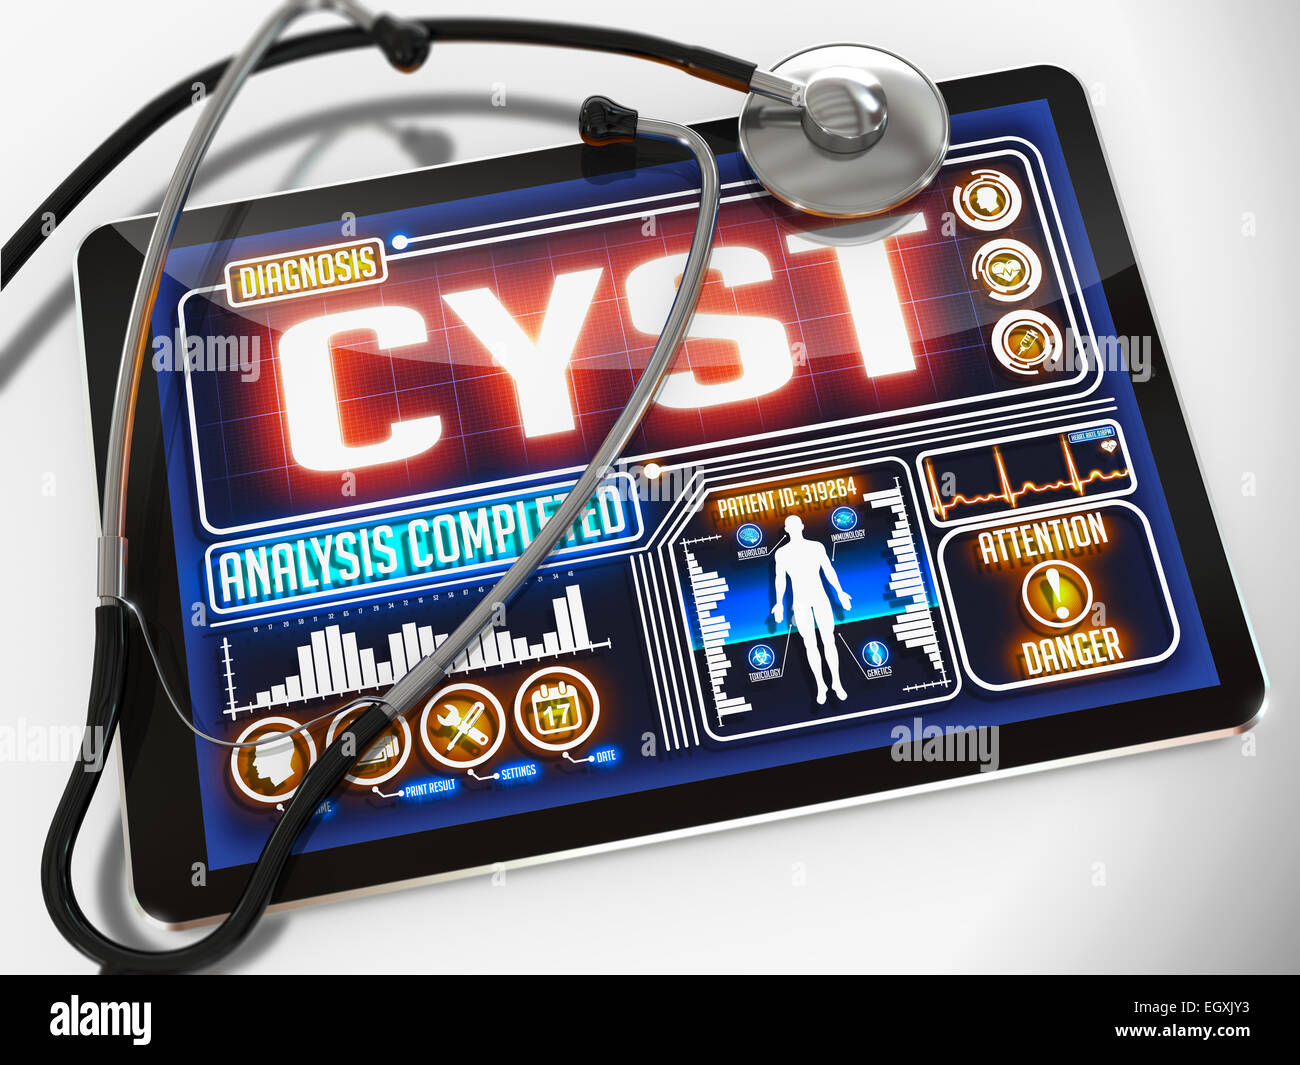 Cyst on the Display of Medical Tablet. Stock Photo